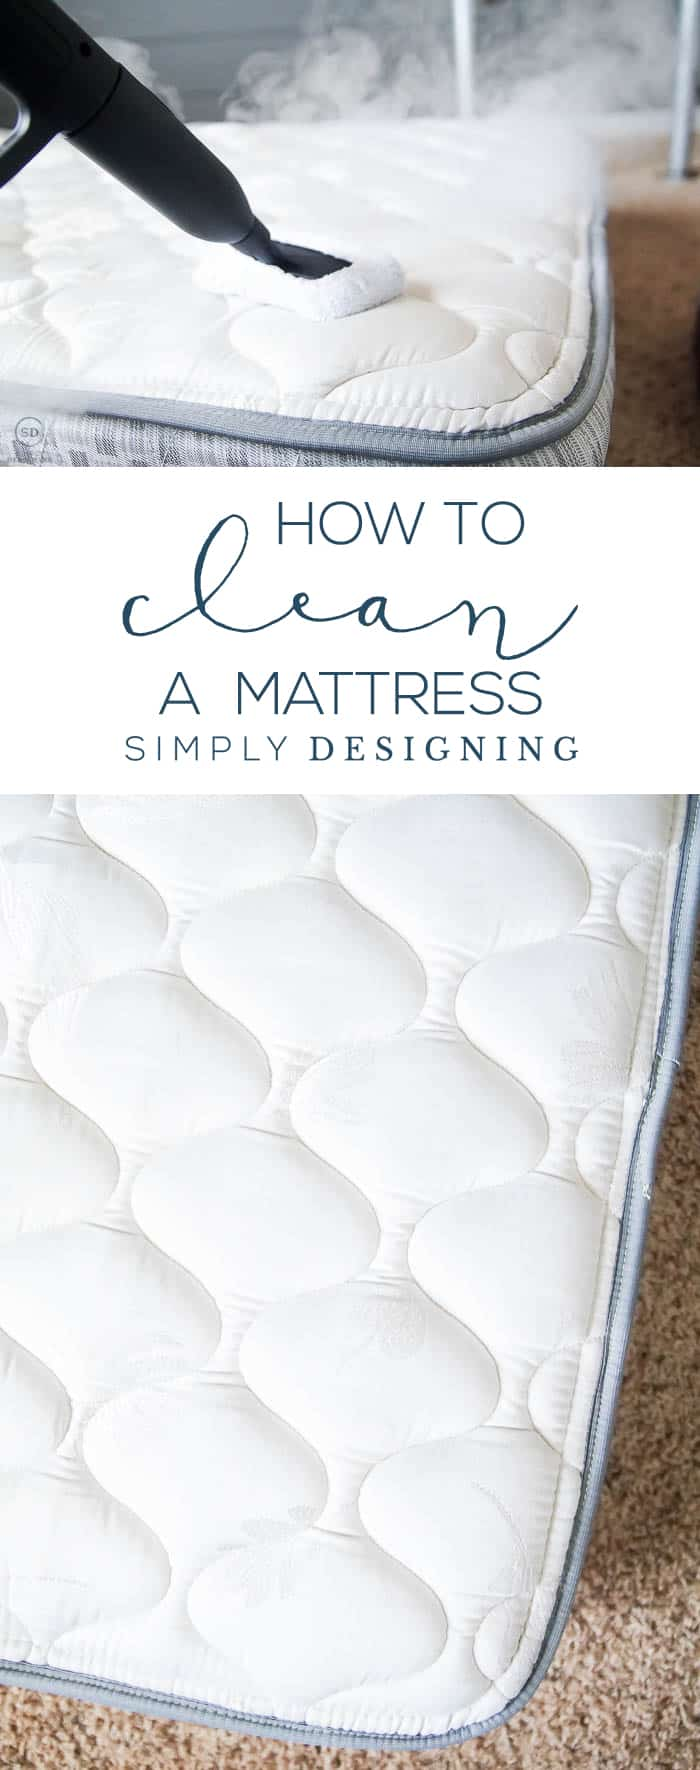 How To Clean A Mattress Simply Designing With Ashley